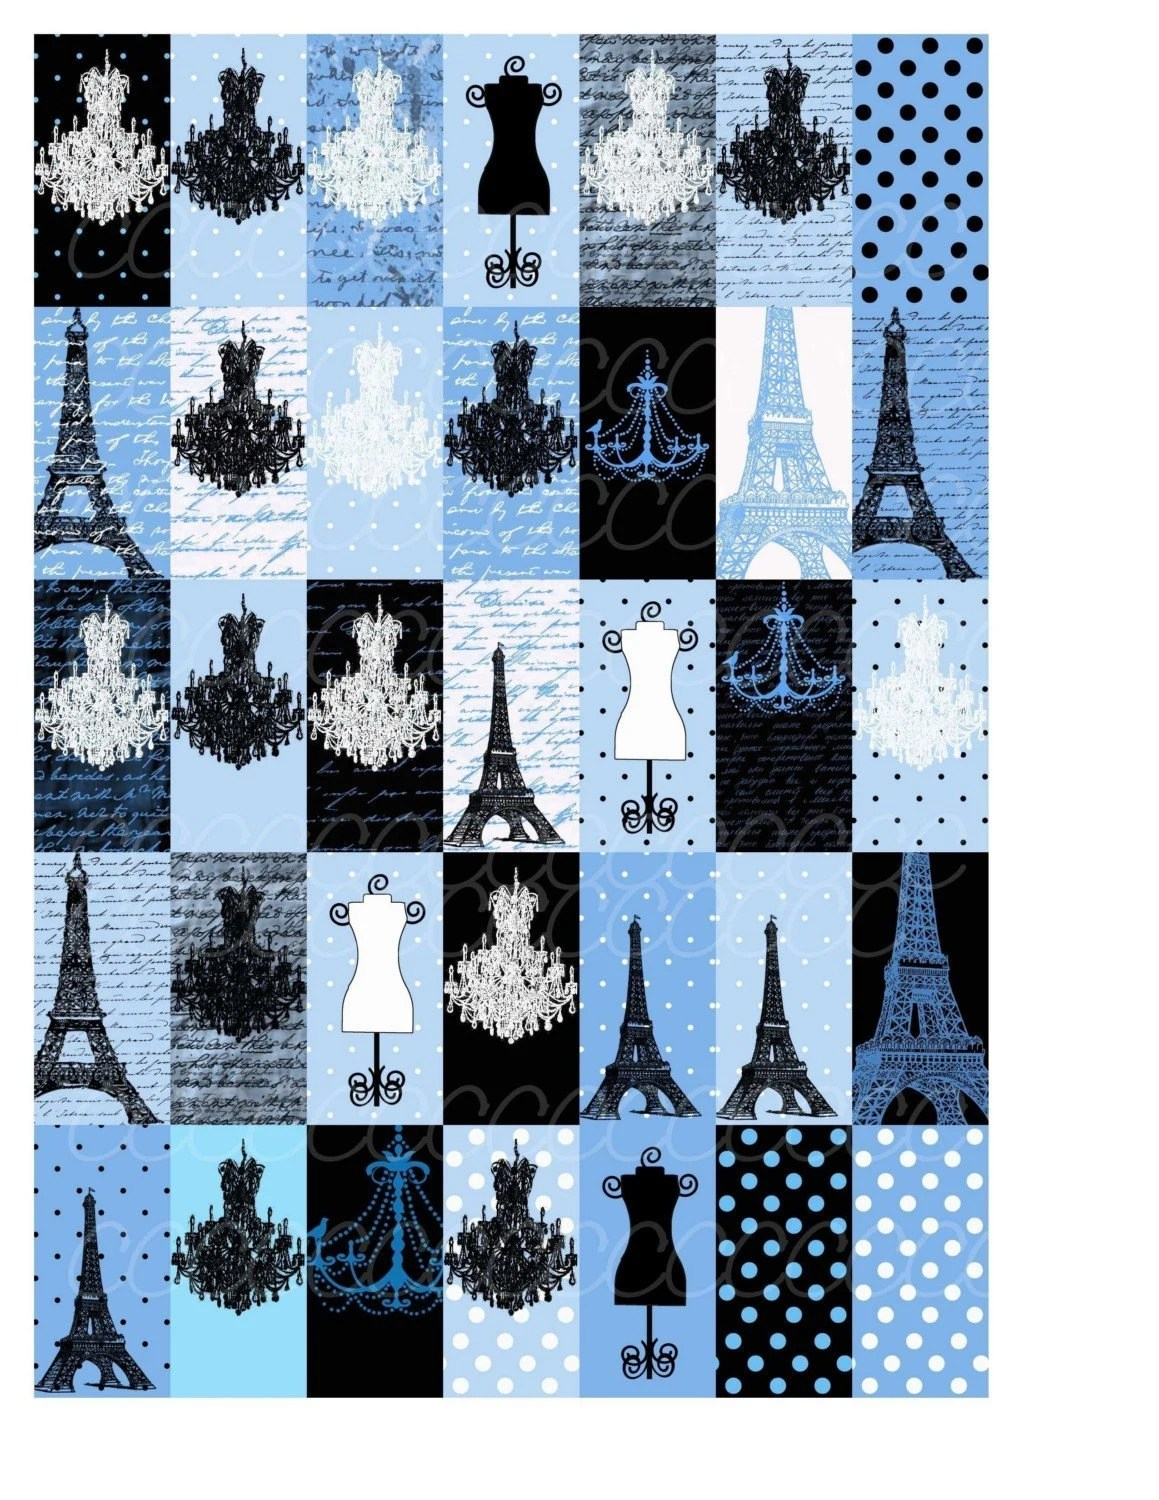 Shabby Chic Black and Blue Digital Collage Sheet 1 by 2 domino pendant size Chandelier Dressform - cupcakecutiees